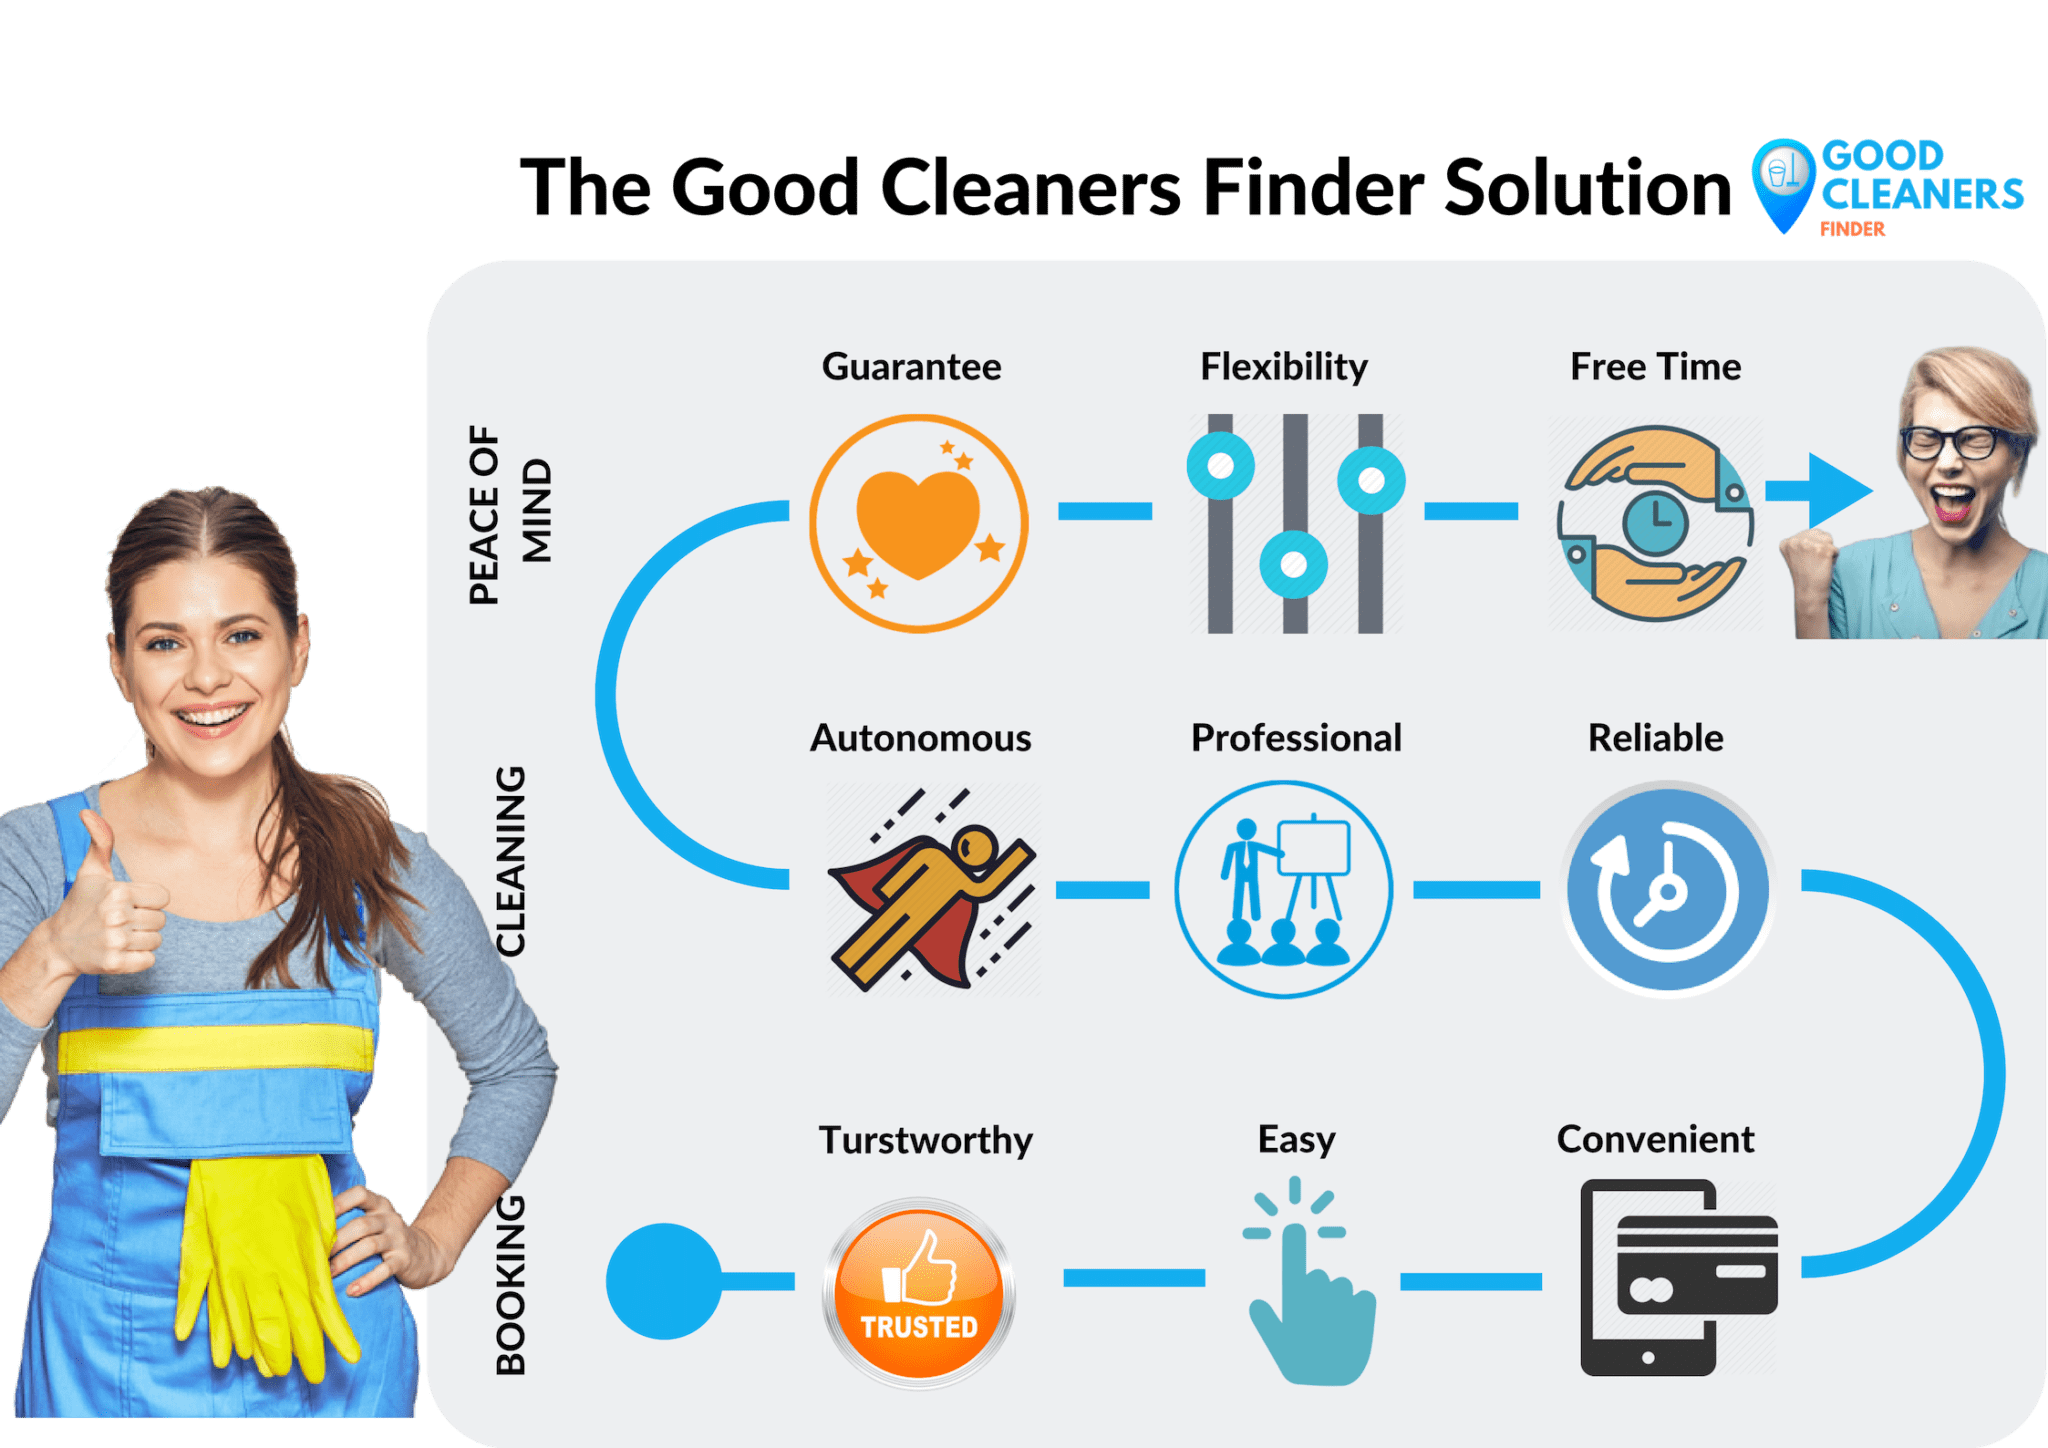 Good Cleaners Finder